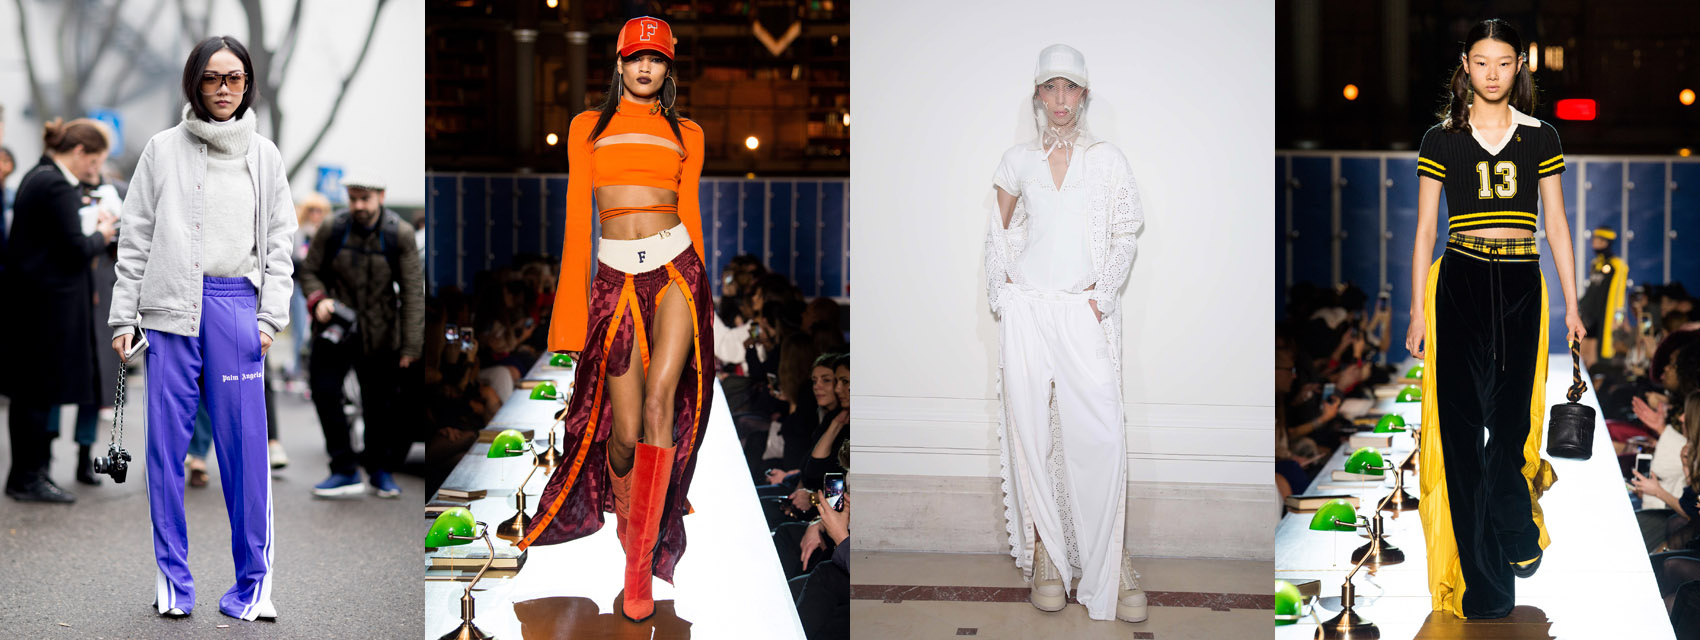 8 Tearaway Pants Inspired By The '90s And Where To Shop ...